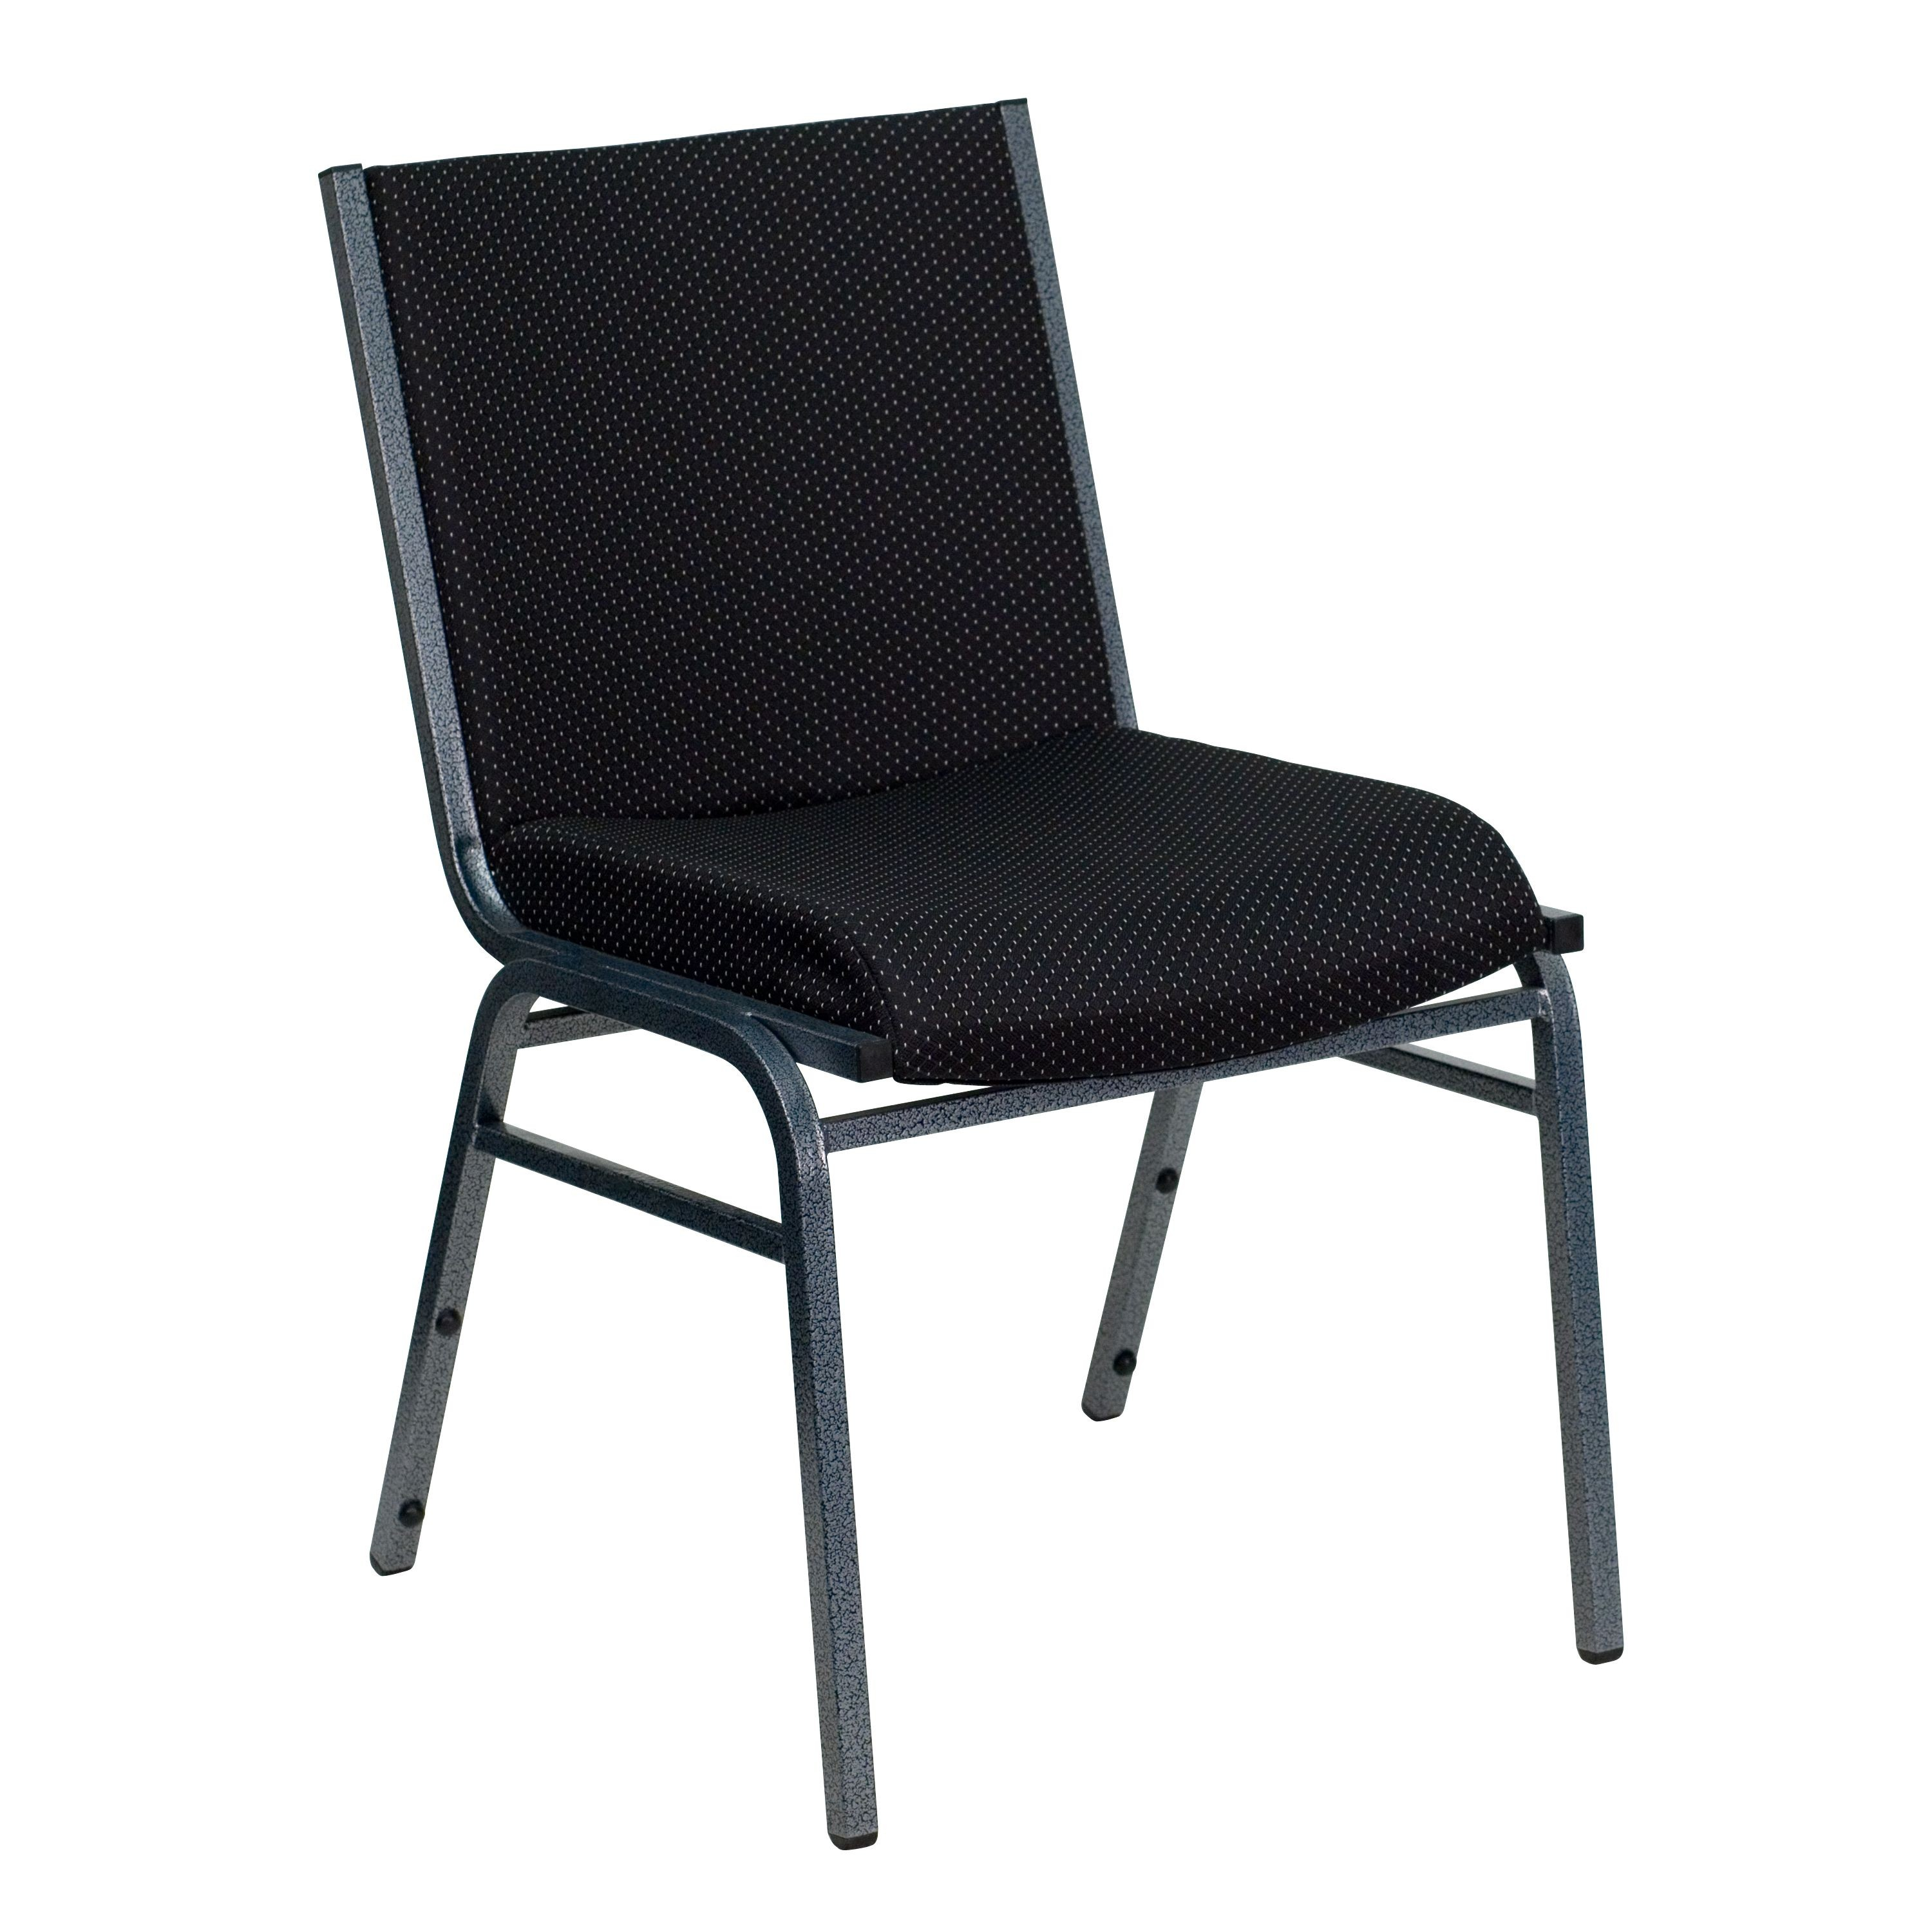 Flash Furniture xu-60153-BK-gg Heavy Duty, 3'' Thickly Padded, Black Patterned Upholstered Stack Chair